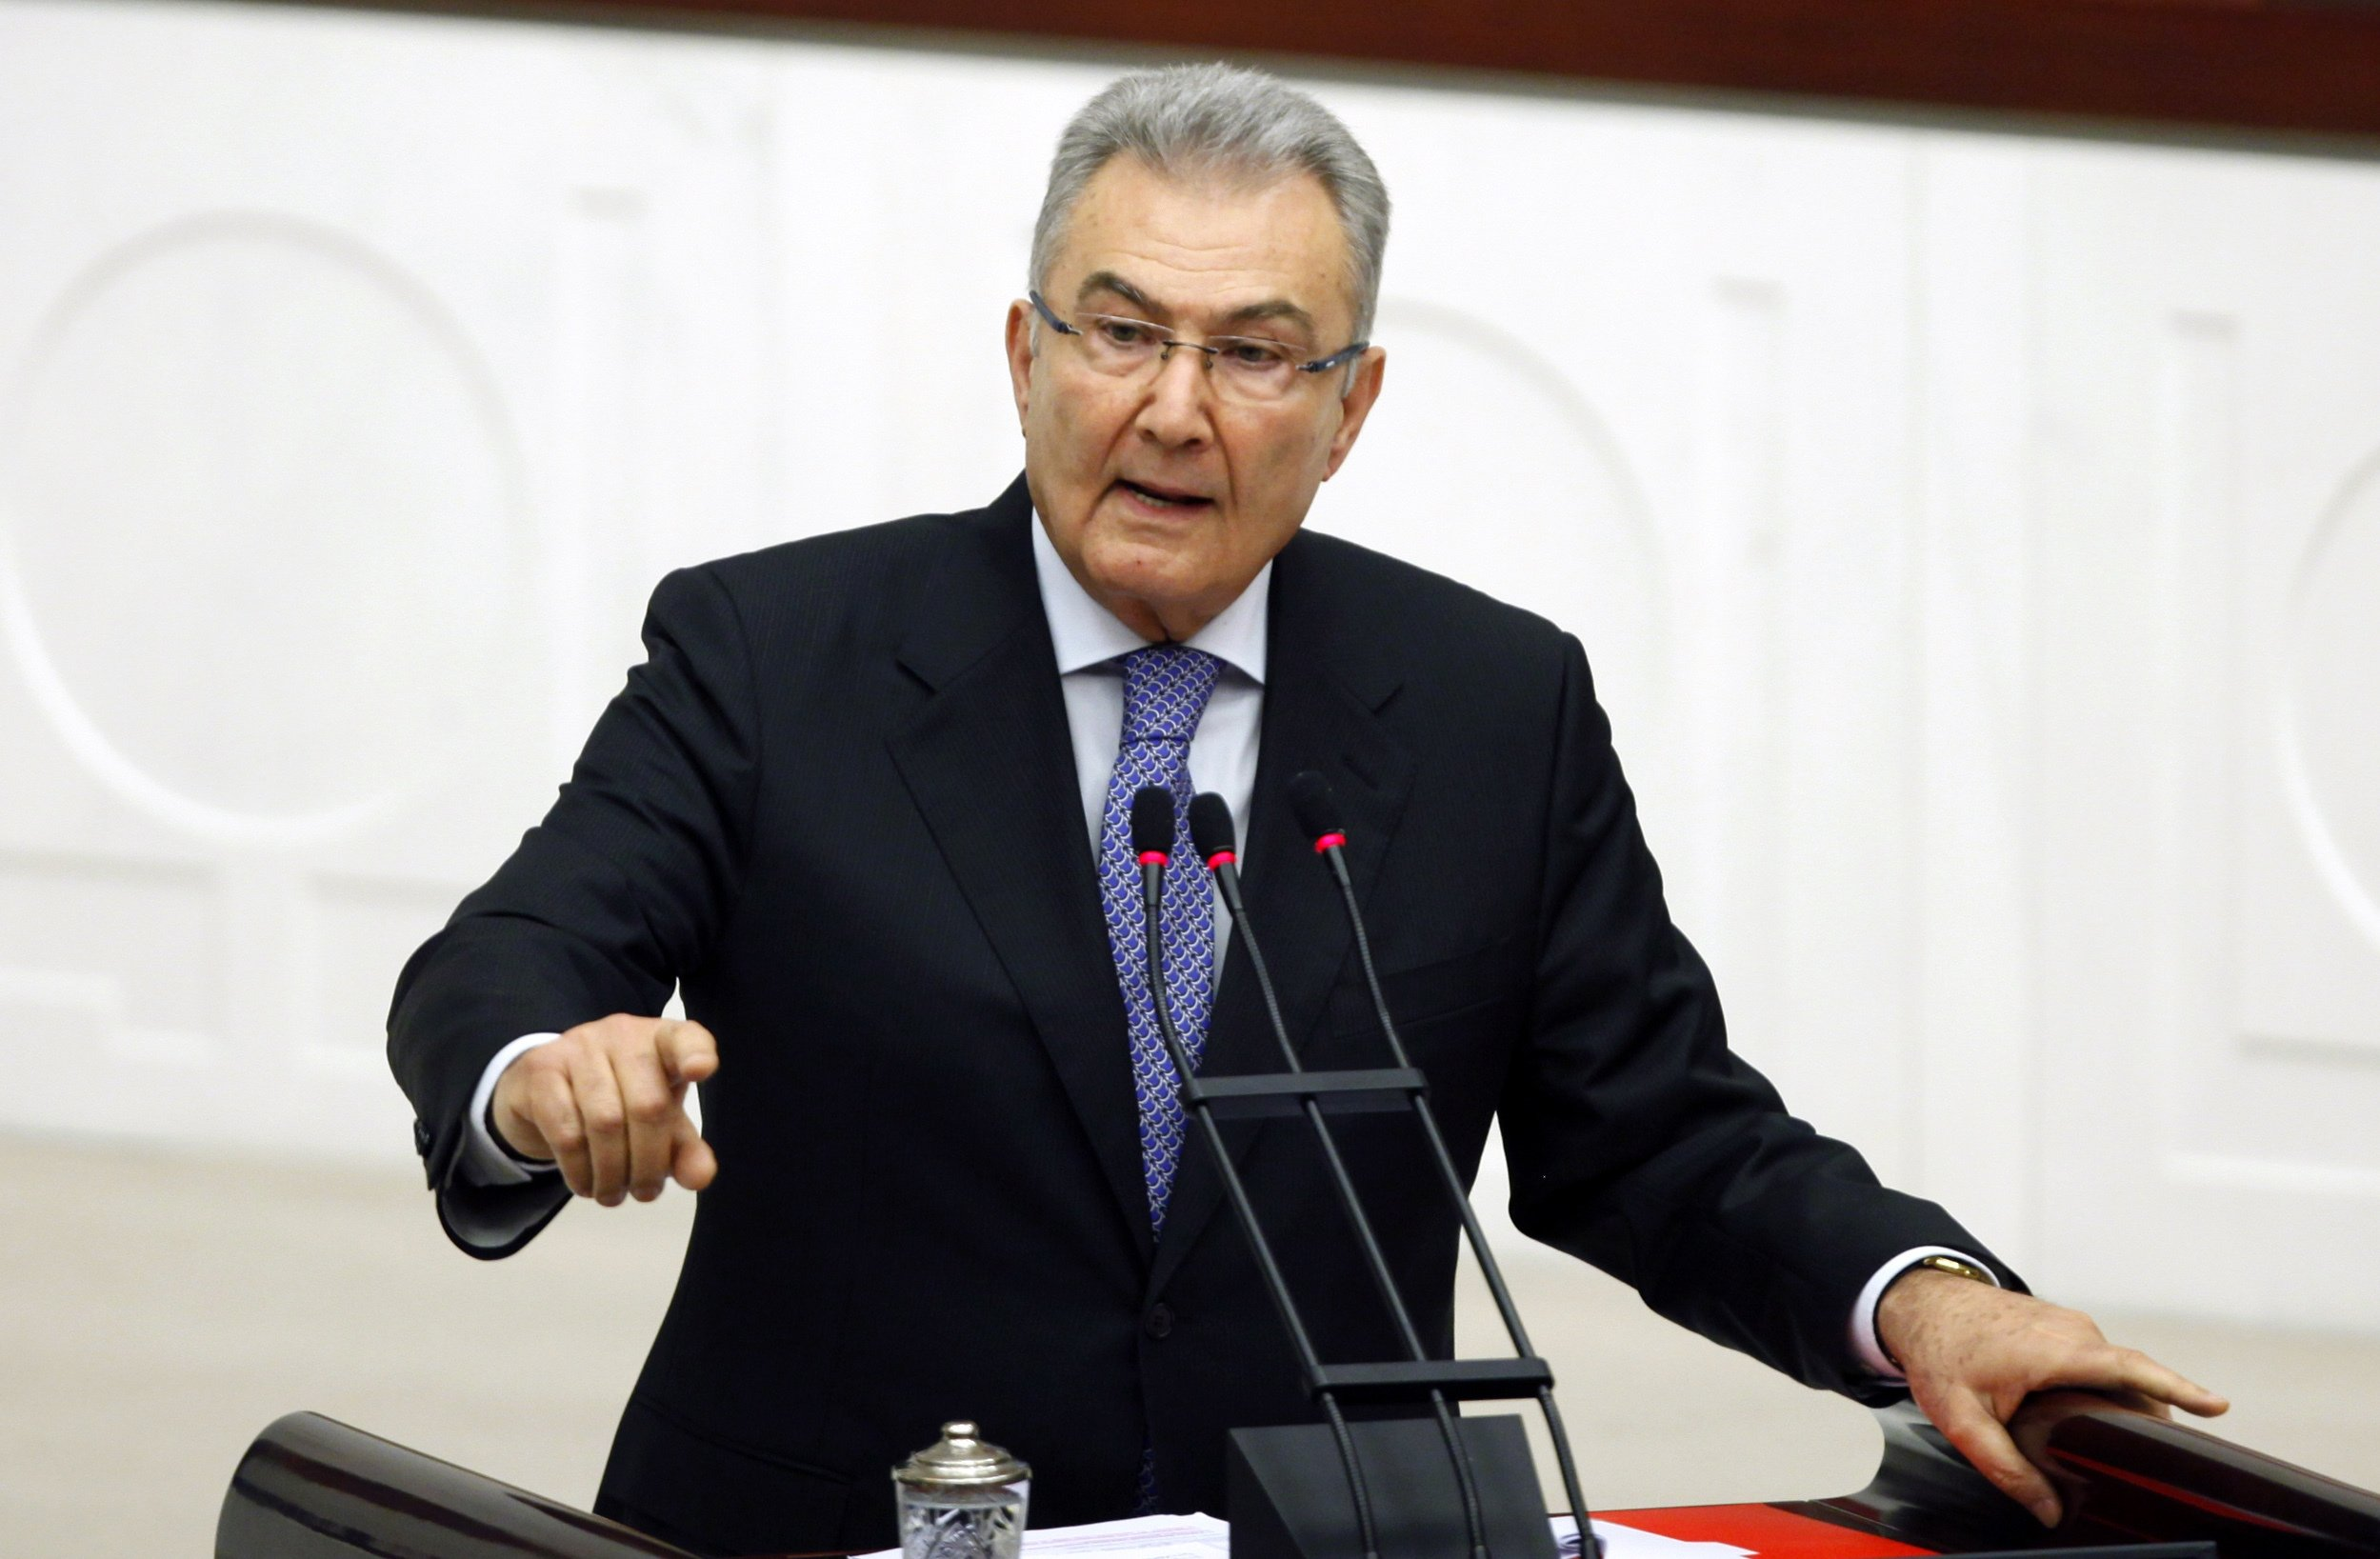 Republican People's Party's (CHP) former Chairman Deniz Baykal addresses members of parliament during a debate at the Turkish Parliament in Ankara, Turkey, April 19, 2010. (Reuters Photo)